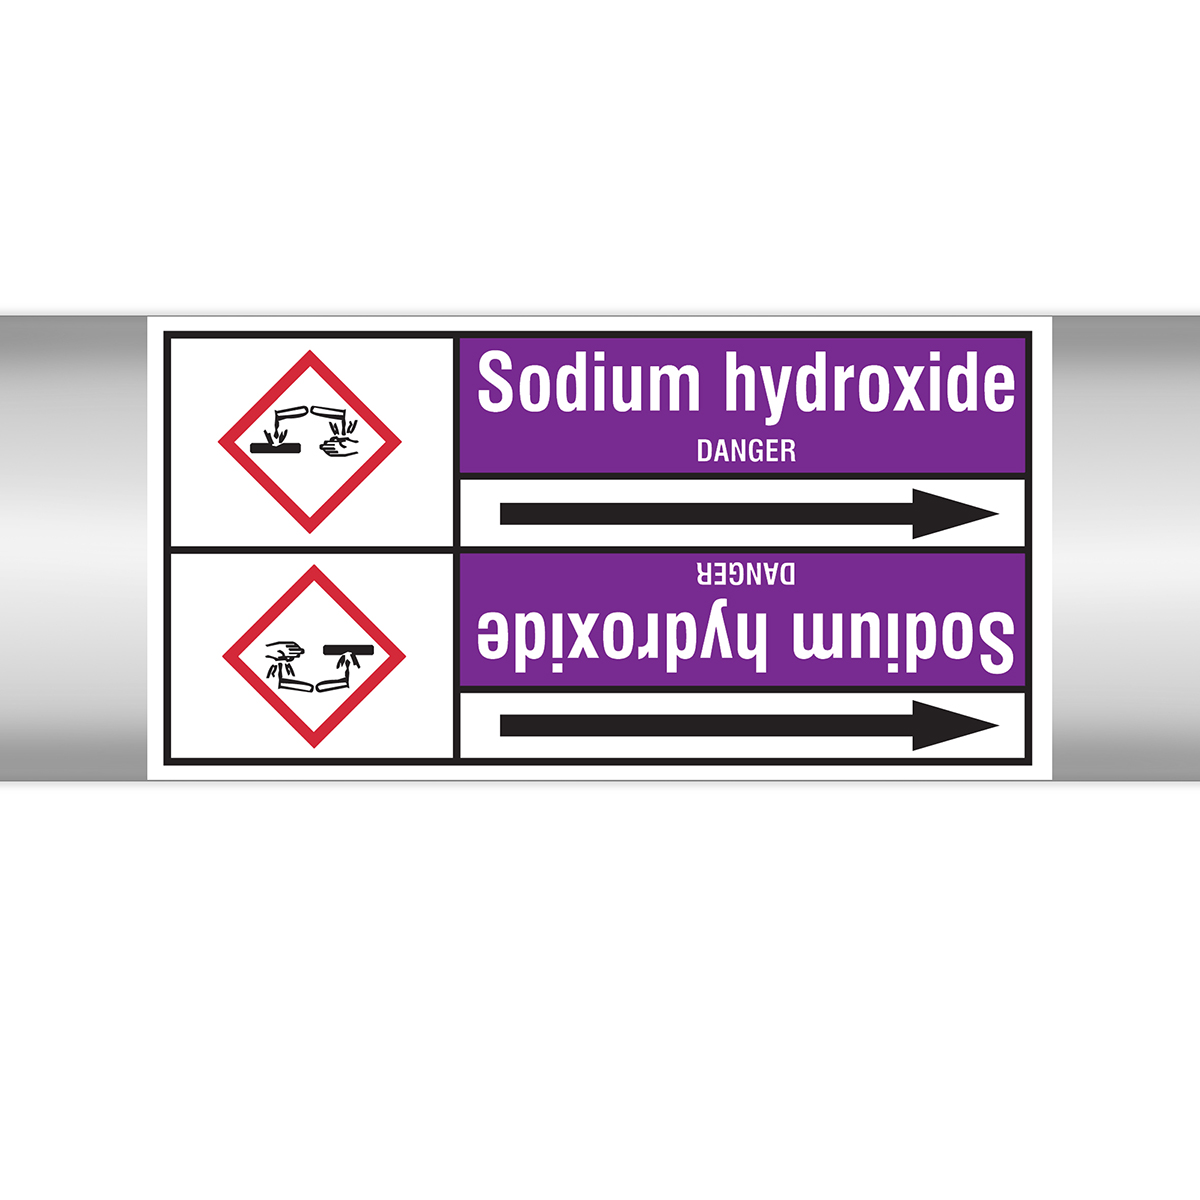 Roll Form Liner-less Type 2 - Sodium Hydroxide